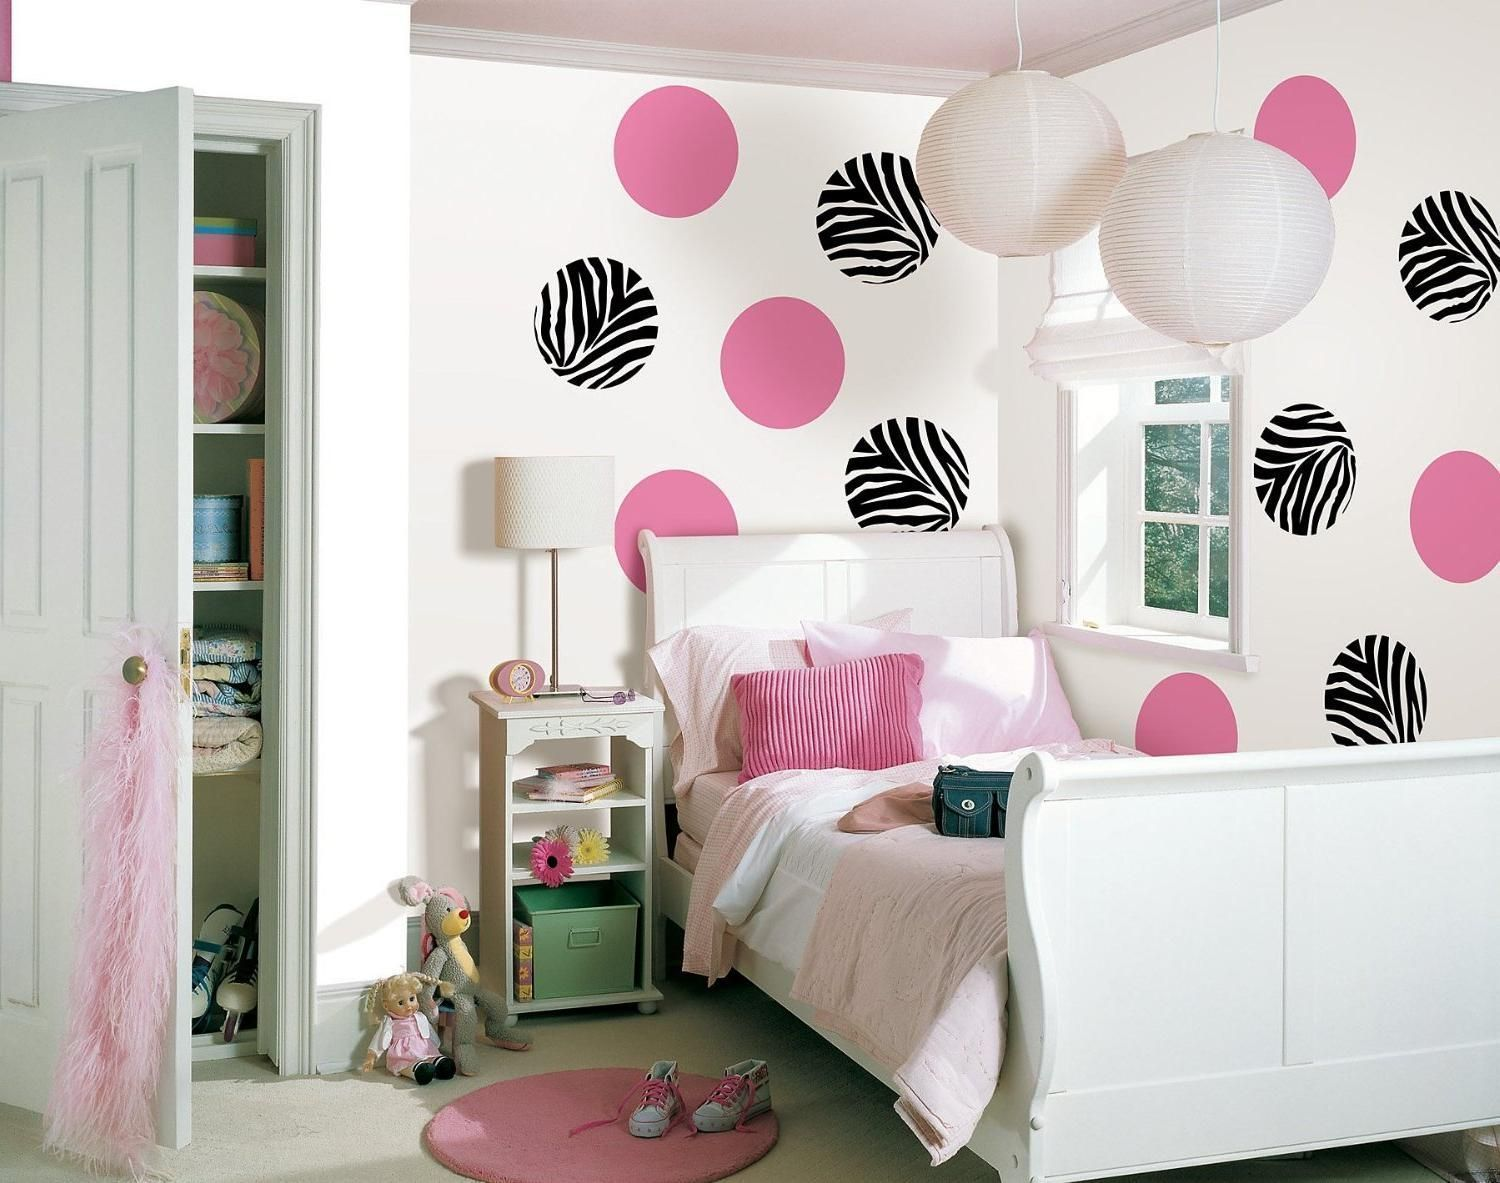 Amusing Teenage Girl Bedroom Design With Black Pink Circle Pattern  Wallpaper And Lampion Above Bed Also White Wooden Headboard Also Lamp Desk  Beside Door ...